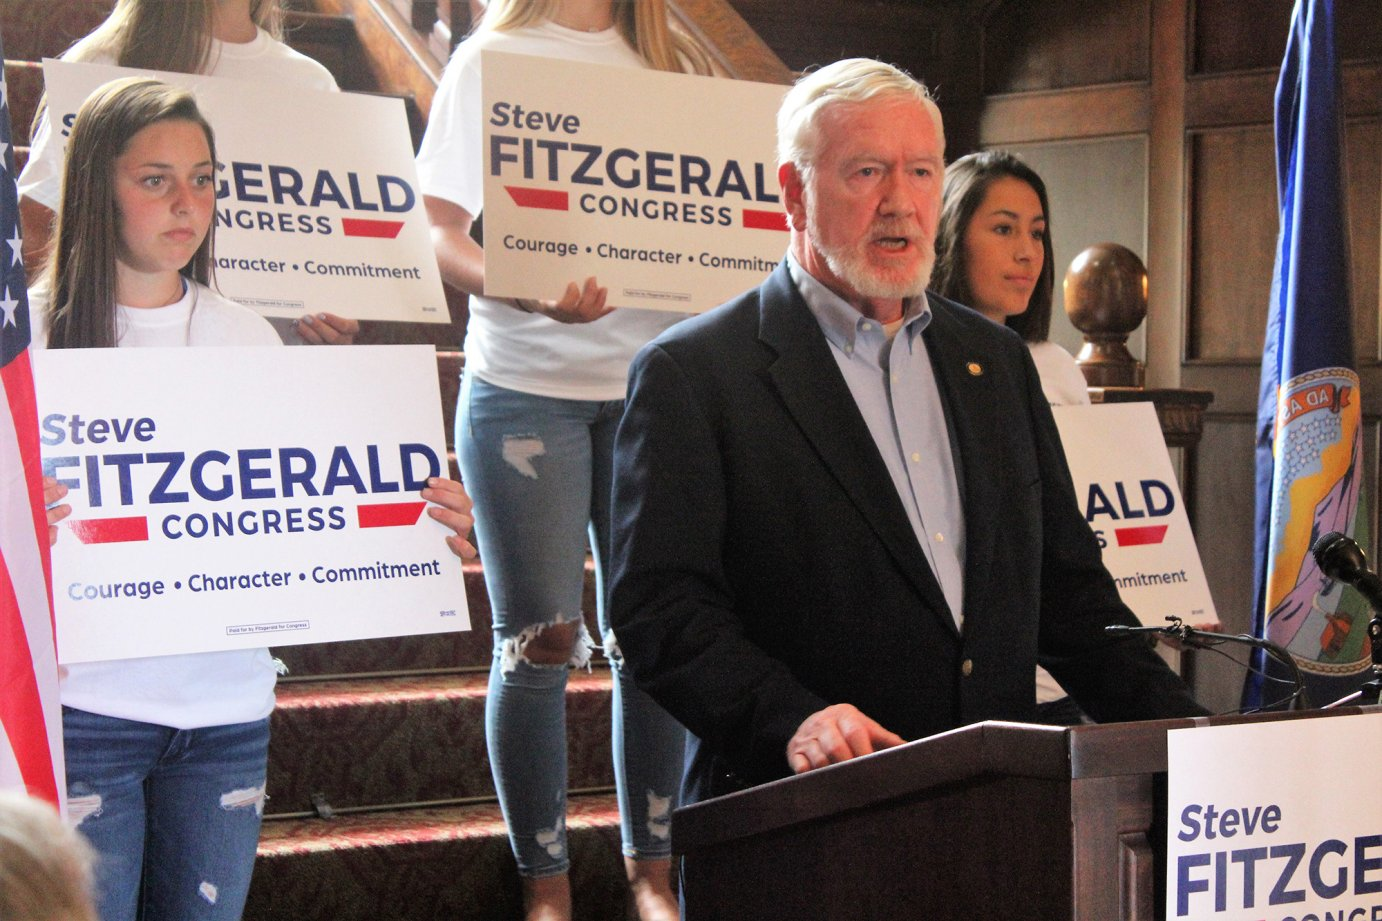 Kansas State Senator Steve Fitzgerald, of Leavenworth, announced his candidacy for the Republican nomination in the 2nd Congressional District, Thursday in Topeka. (photo credit: Jim McLean, Kansas News Service)